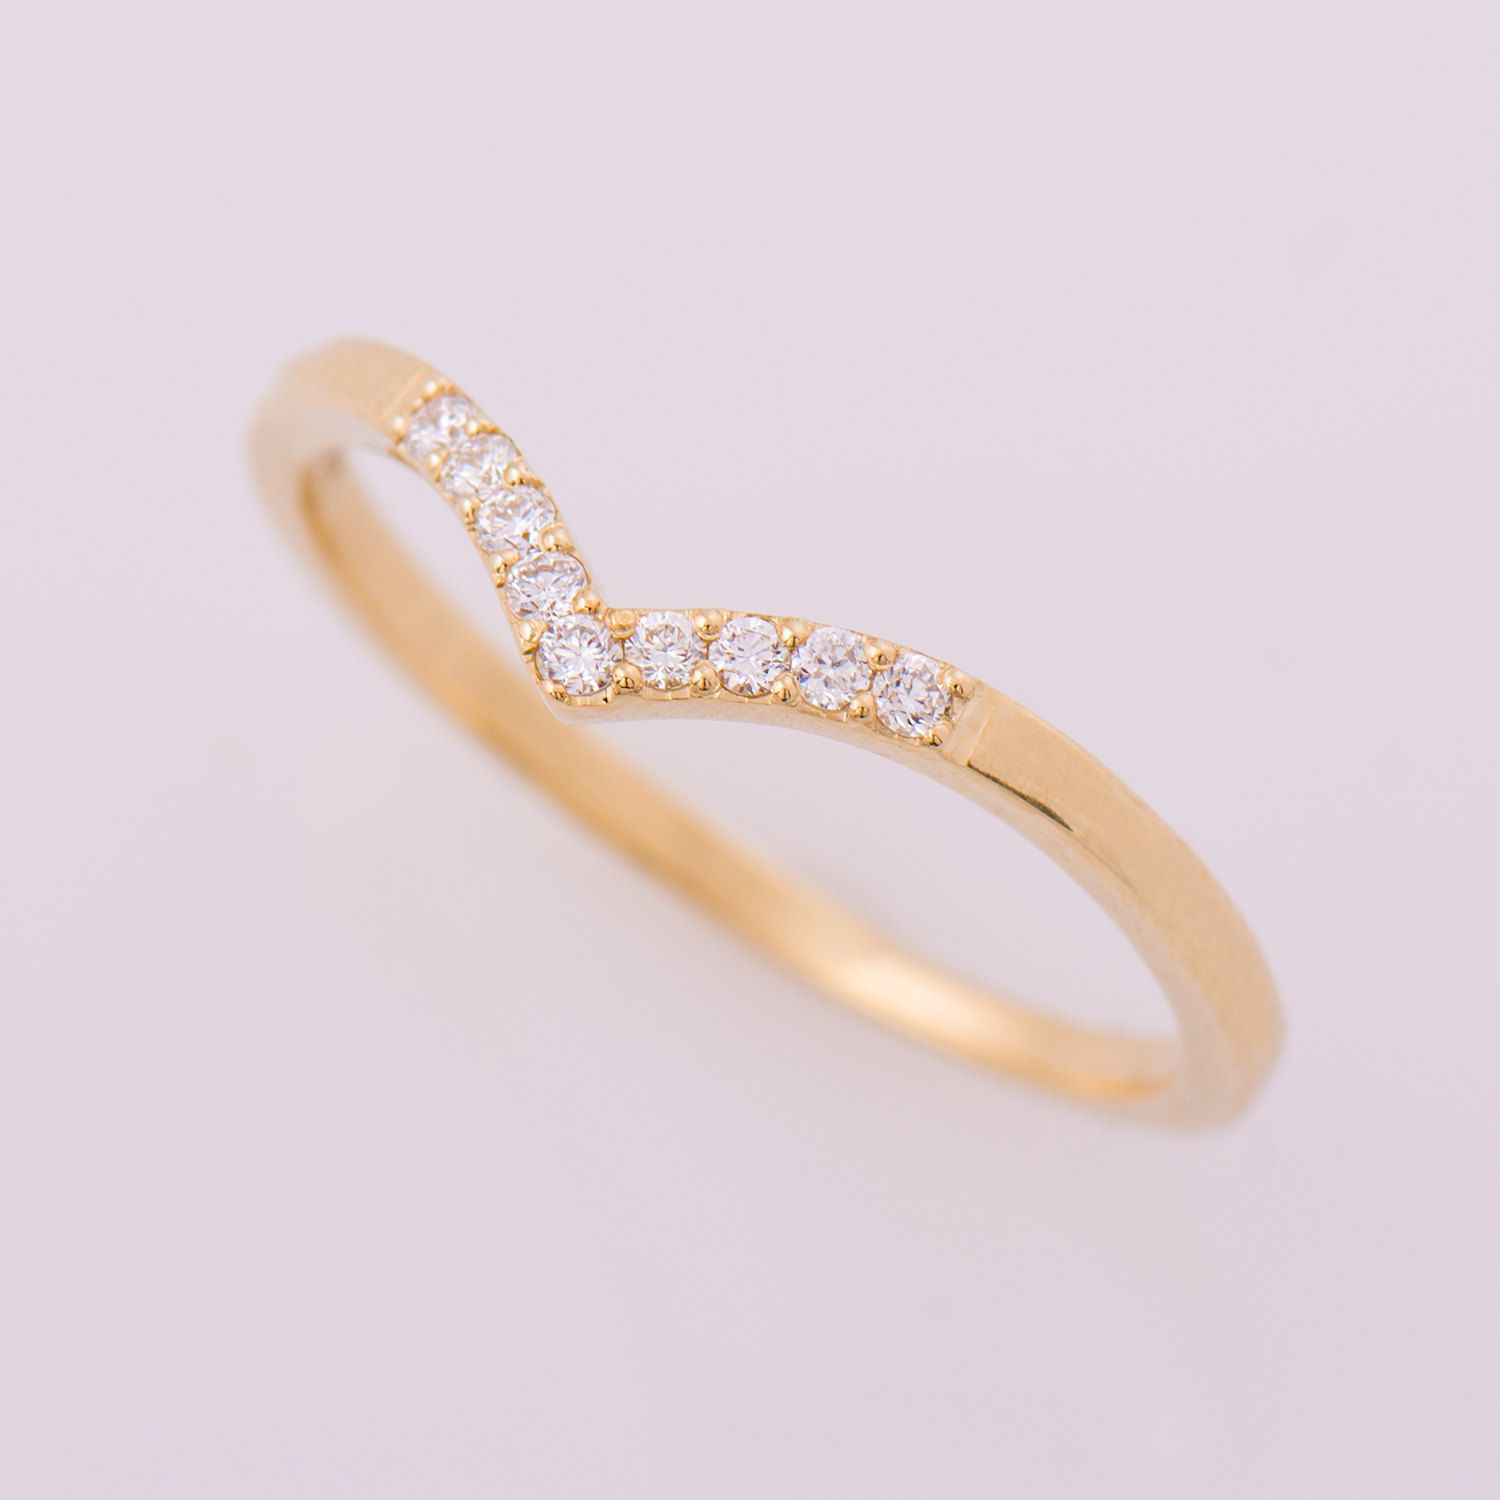 Image Result For Chevron Wedding Band Oval Engagement Ring